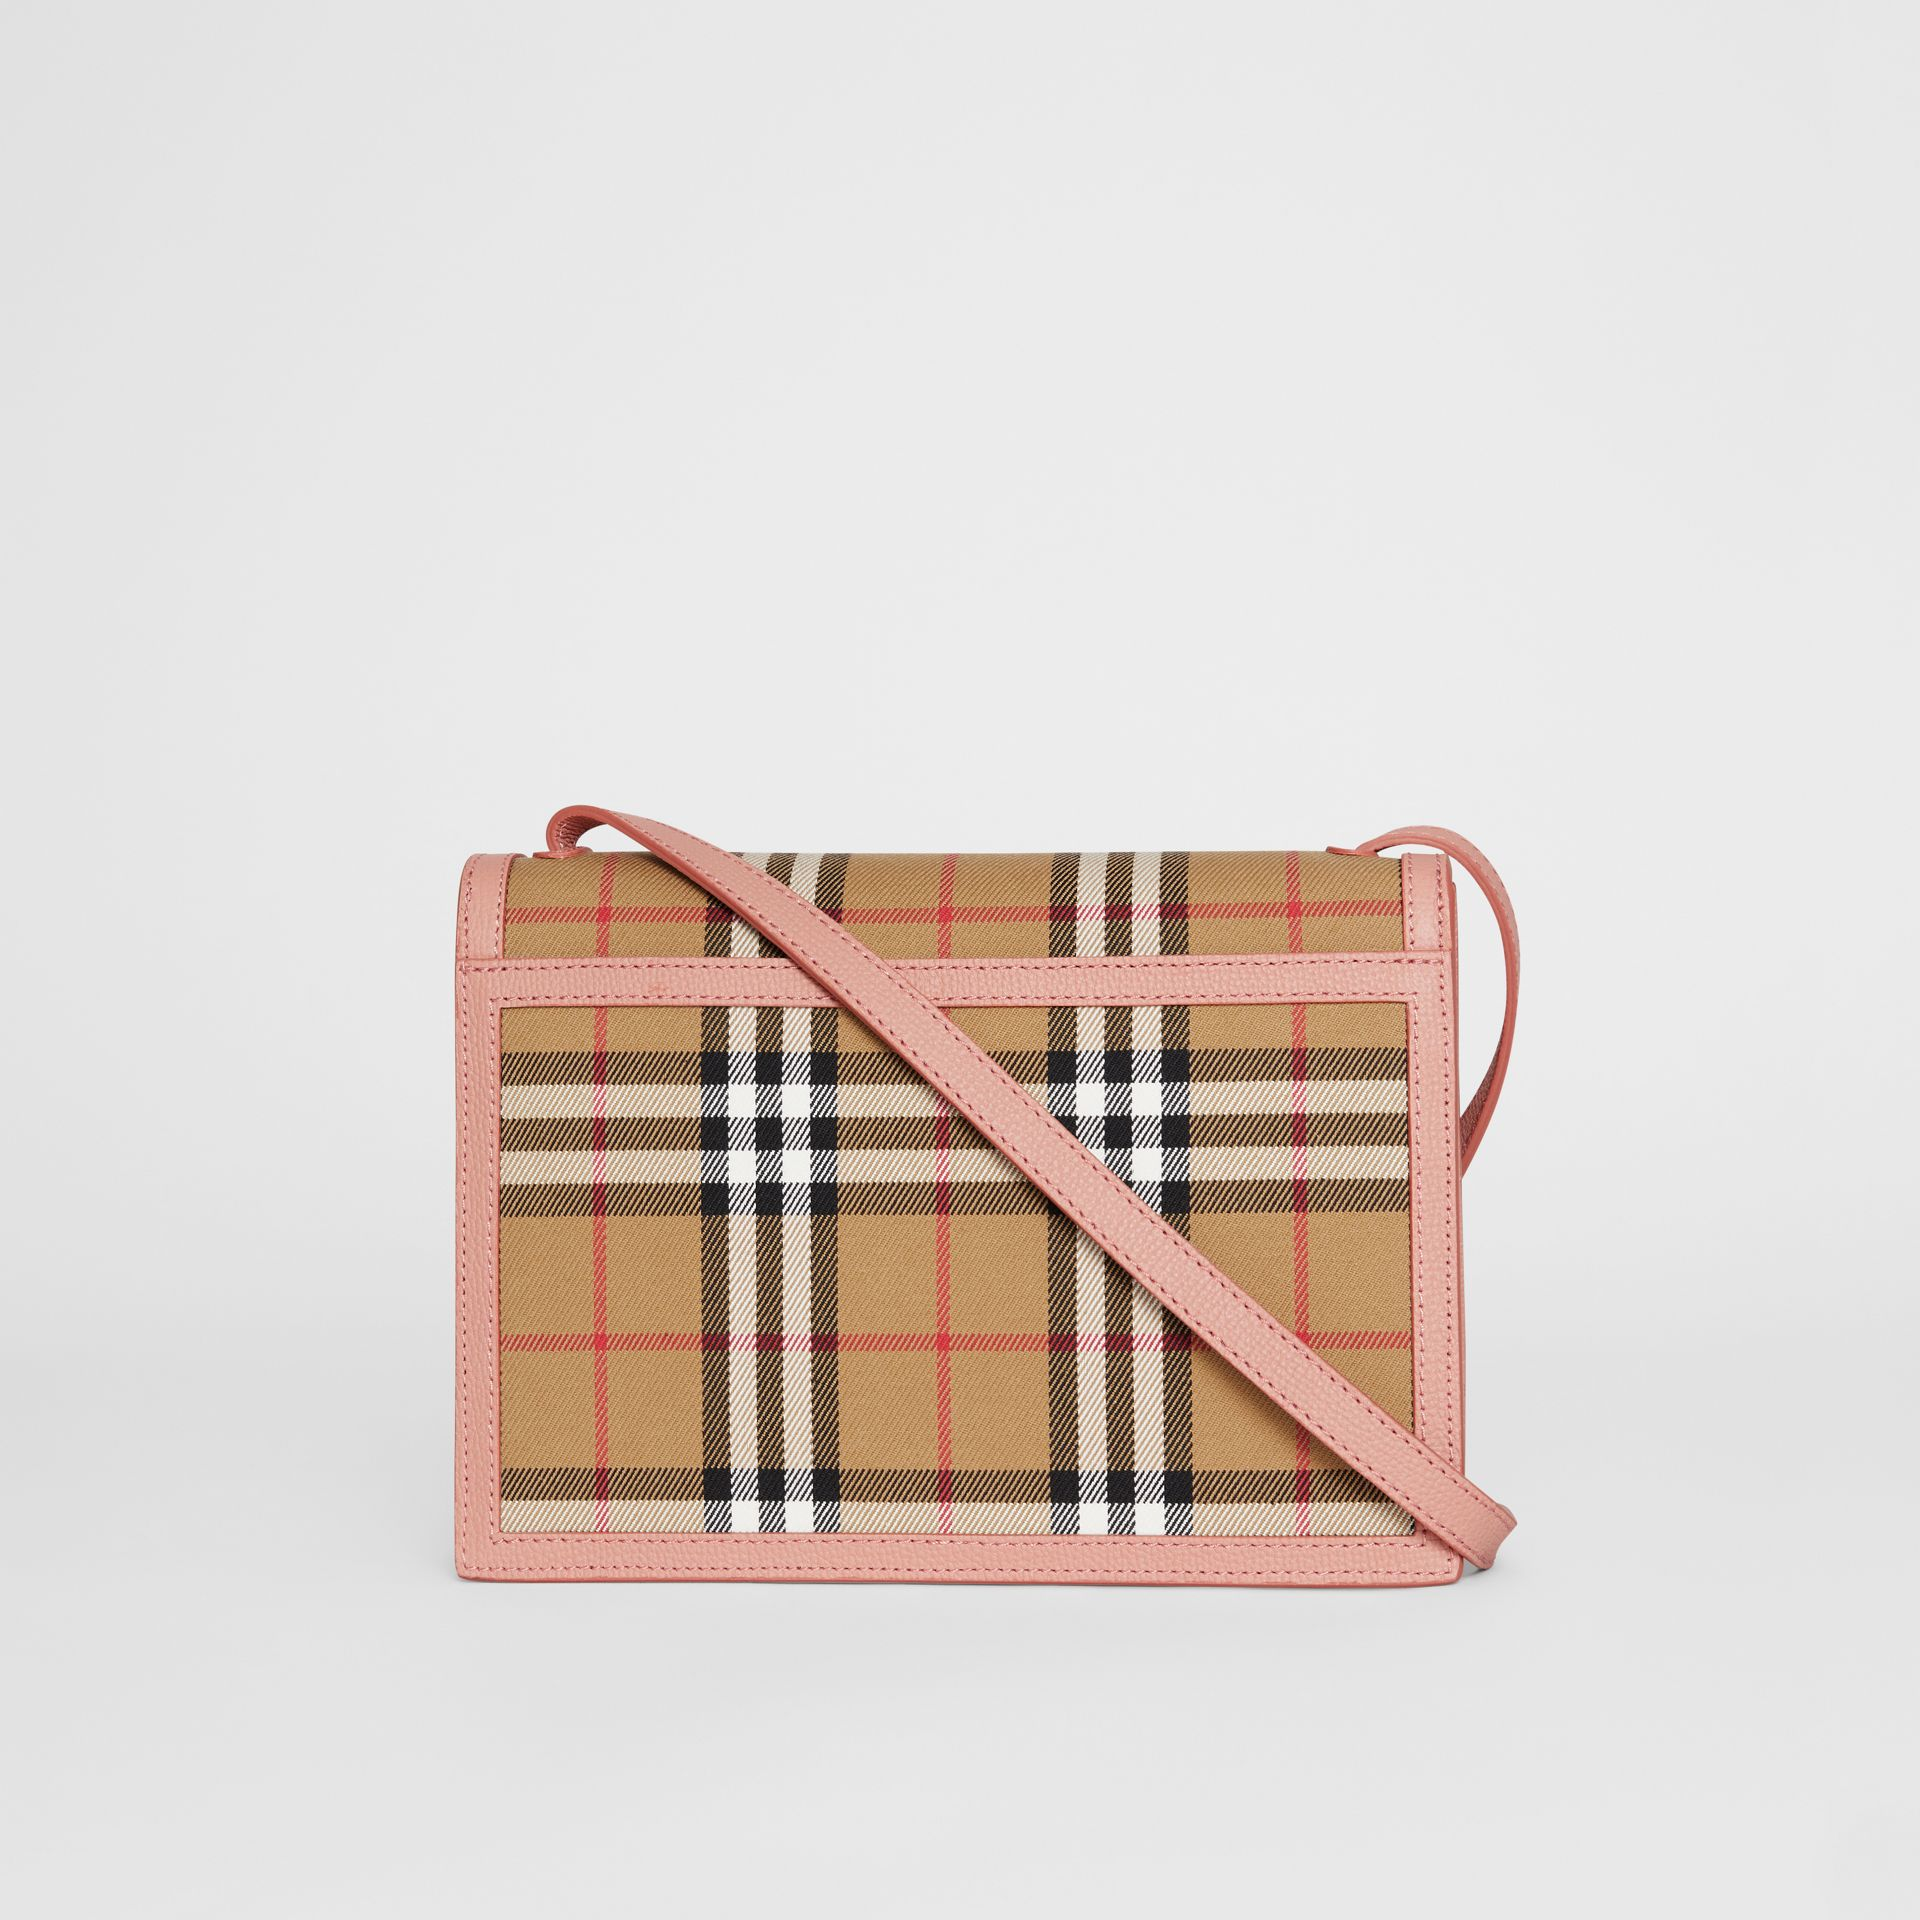 Small Vintage Check and Leather Crossbody Bag in Ash Rose - Women | Burberry Singapore - gallery image 7